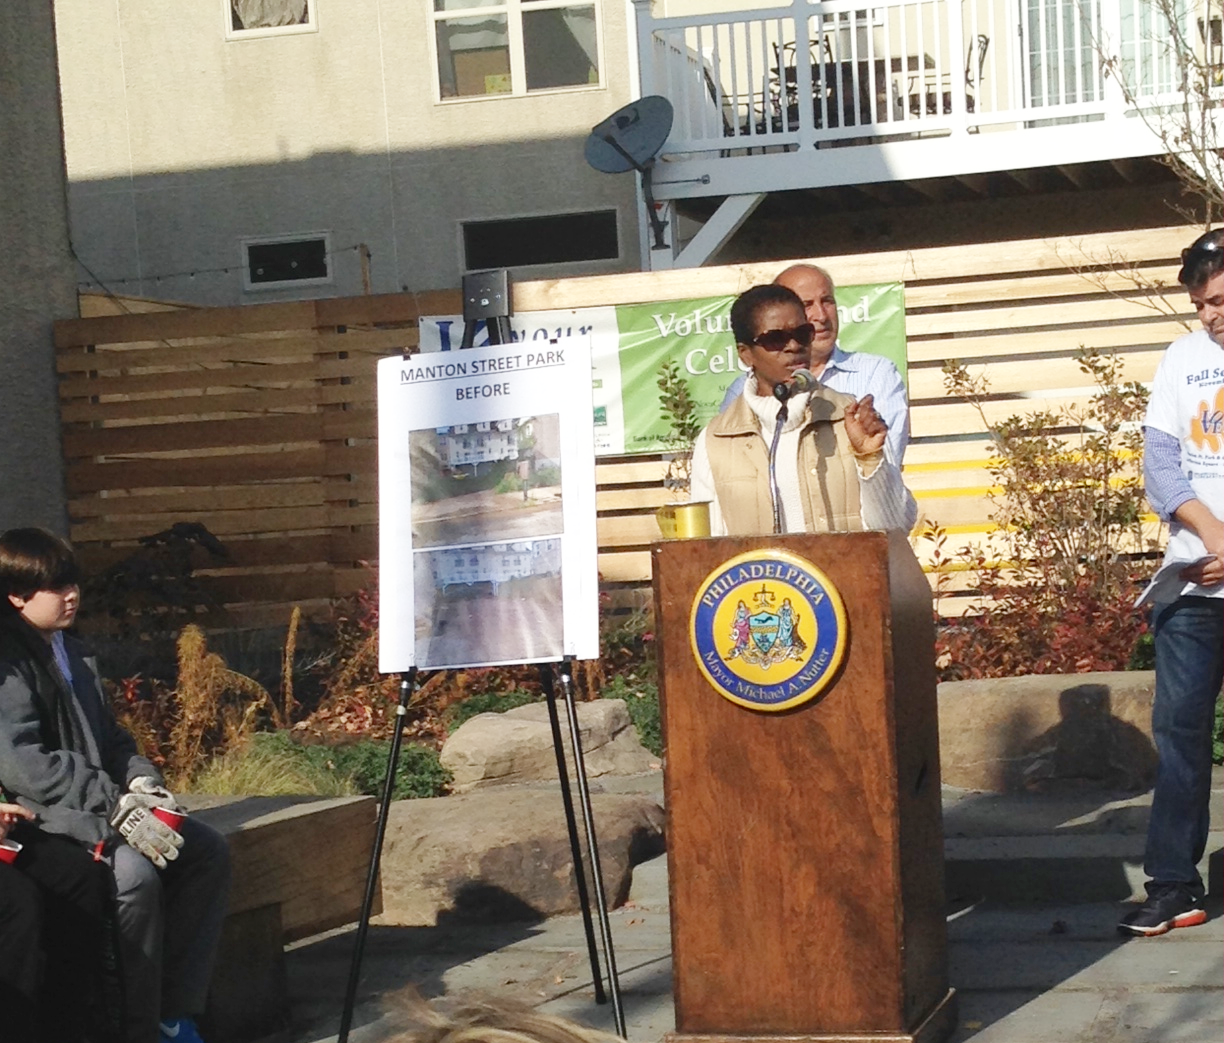 Susan Slawson spoke to residents about the importance of community voices at the Manton Street Park ribbon cutting ceremony.